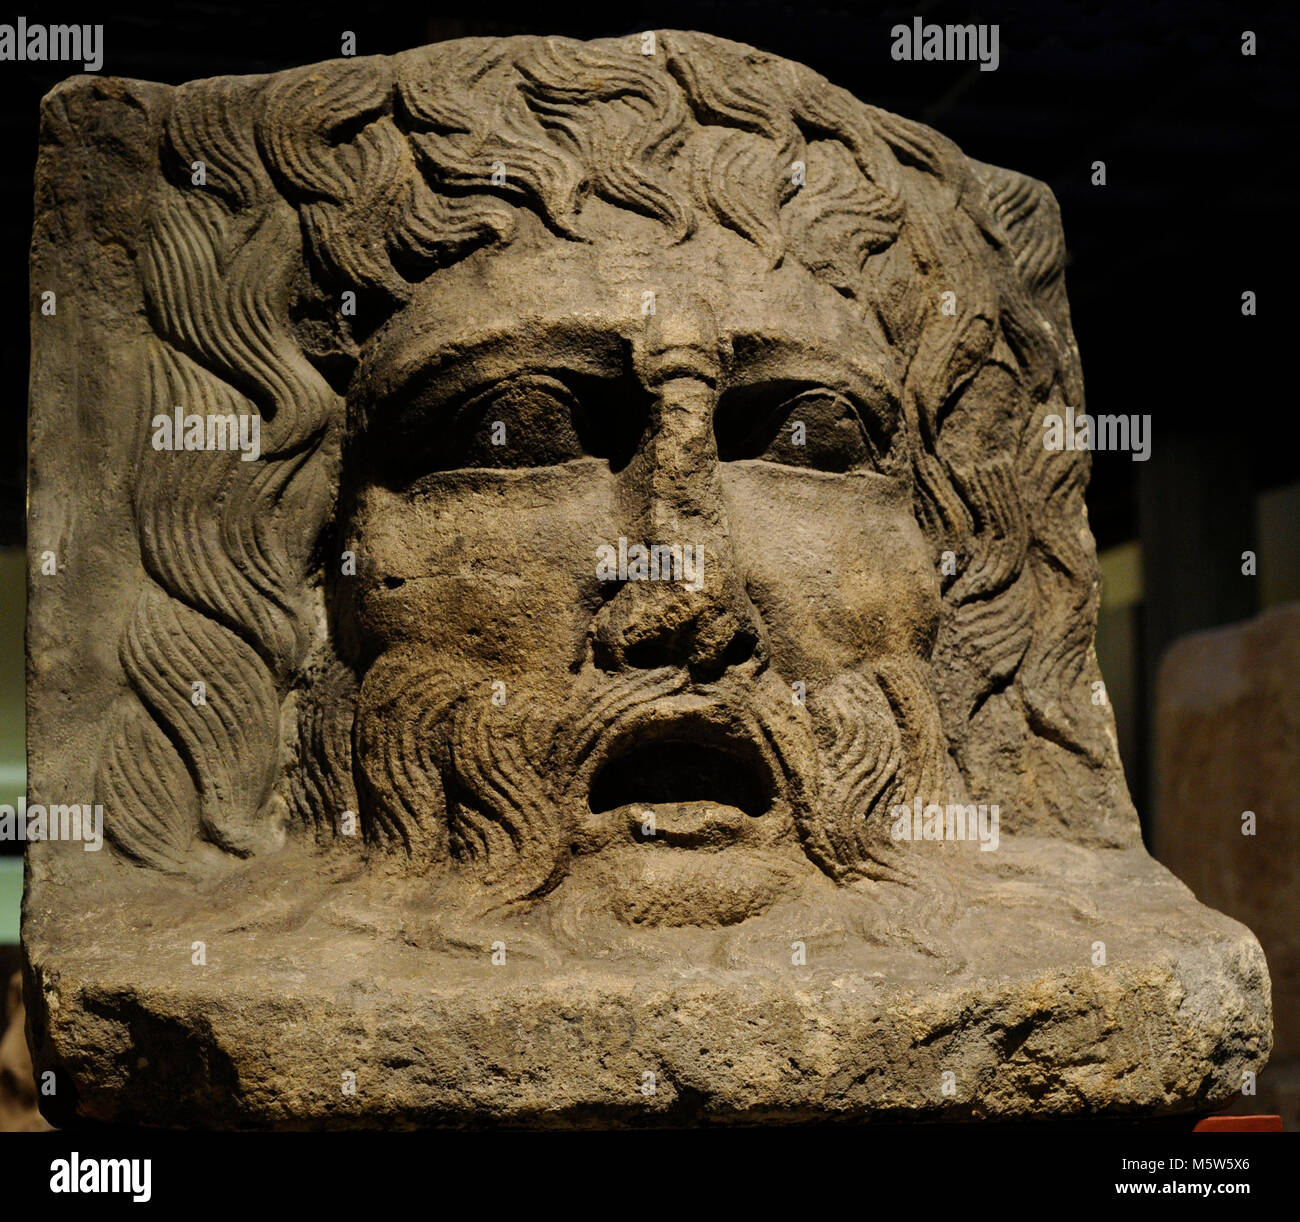 Mask of a River God depicted as an old man. Found in Cologne, Germany. Roman-Germanic Museum. Cologne. Germany. - Stock Image